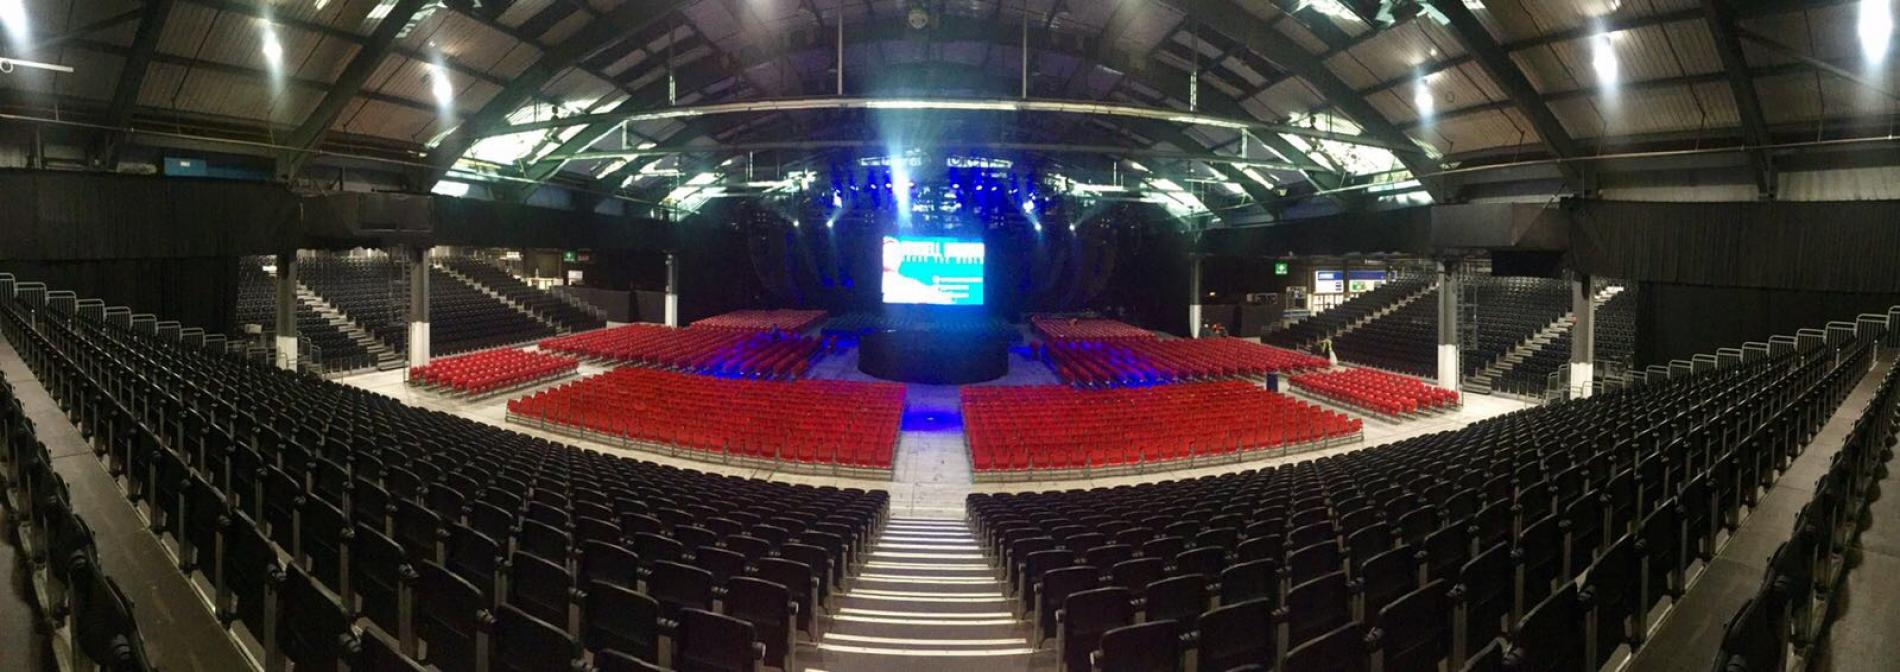 Be Entertained At Aberdeen Exhibition And Conference Centre